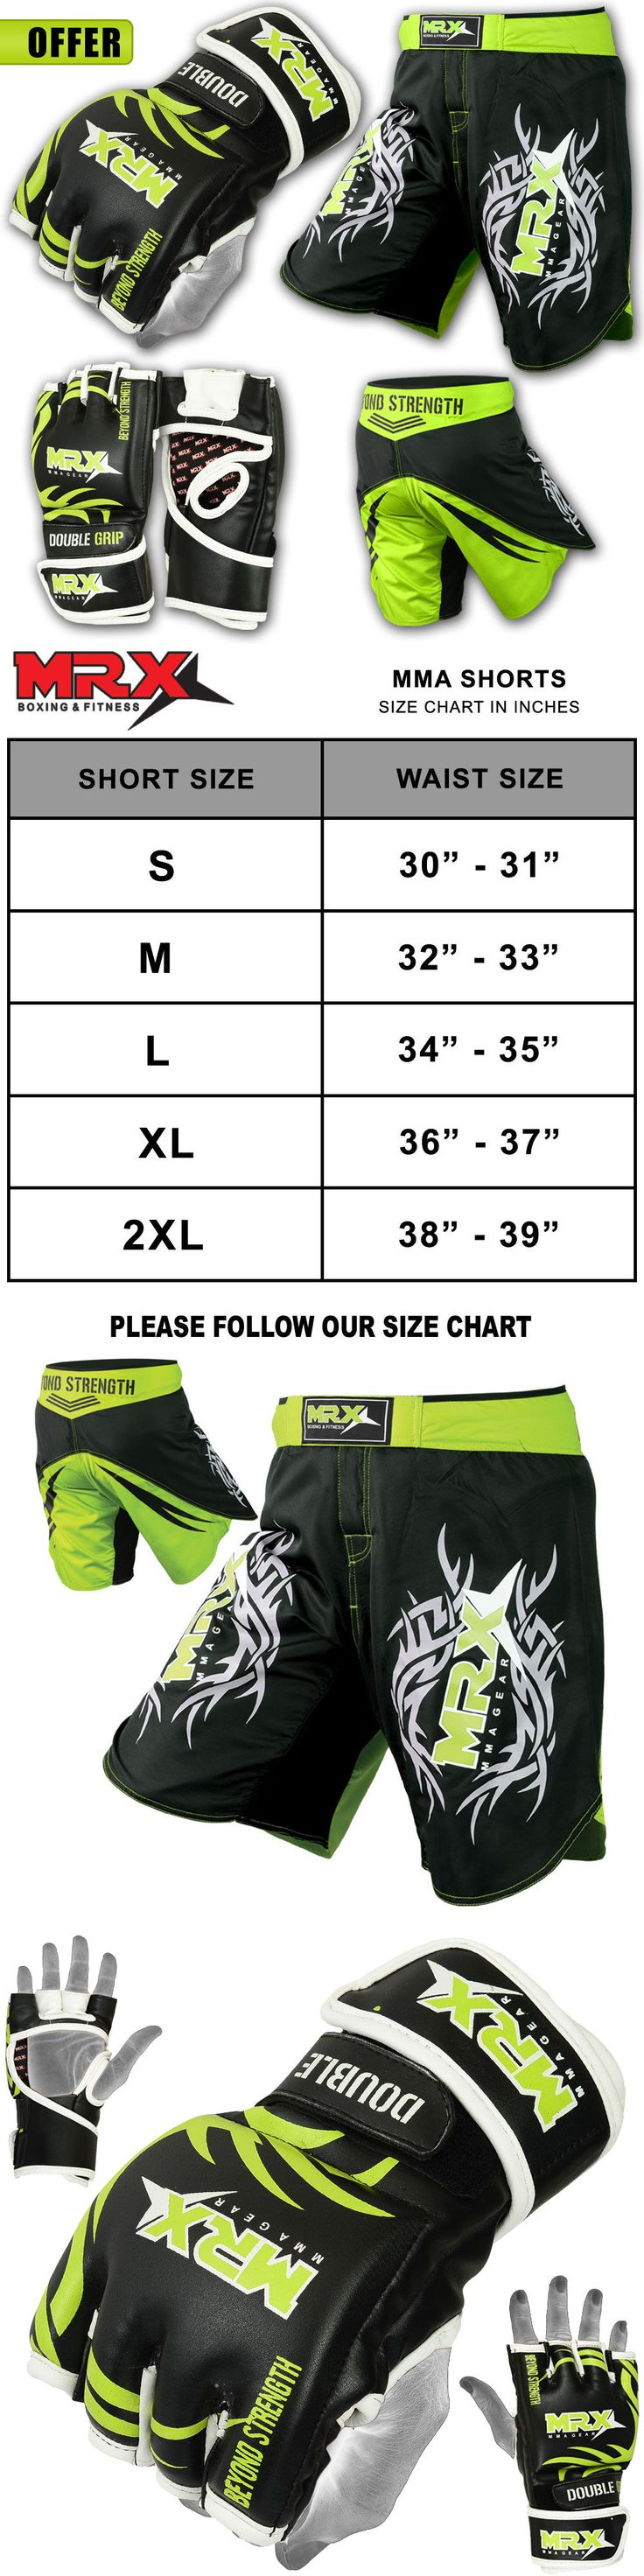 Shorts 73982: Mma Gloves Shorts Ufc Cage Grappling Kickboxing Fight Gear Set Black Green White BUY IT NOW ONLY: $49.99